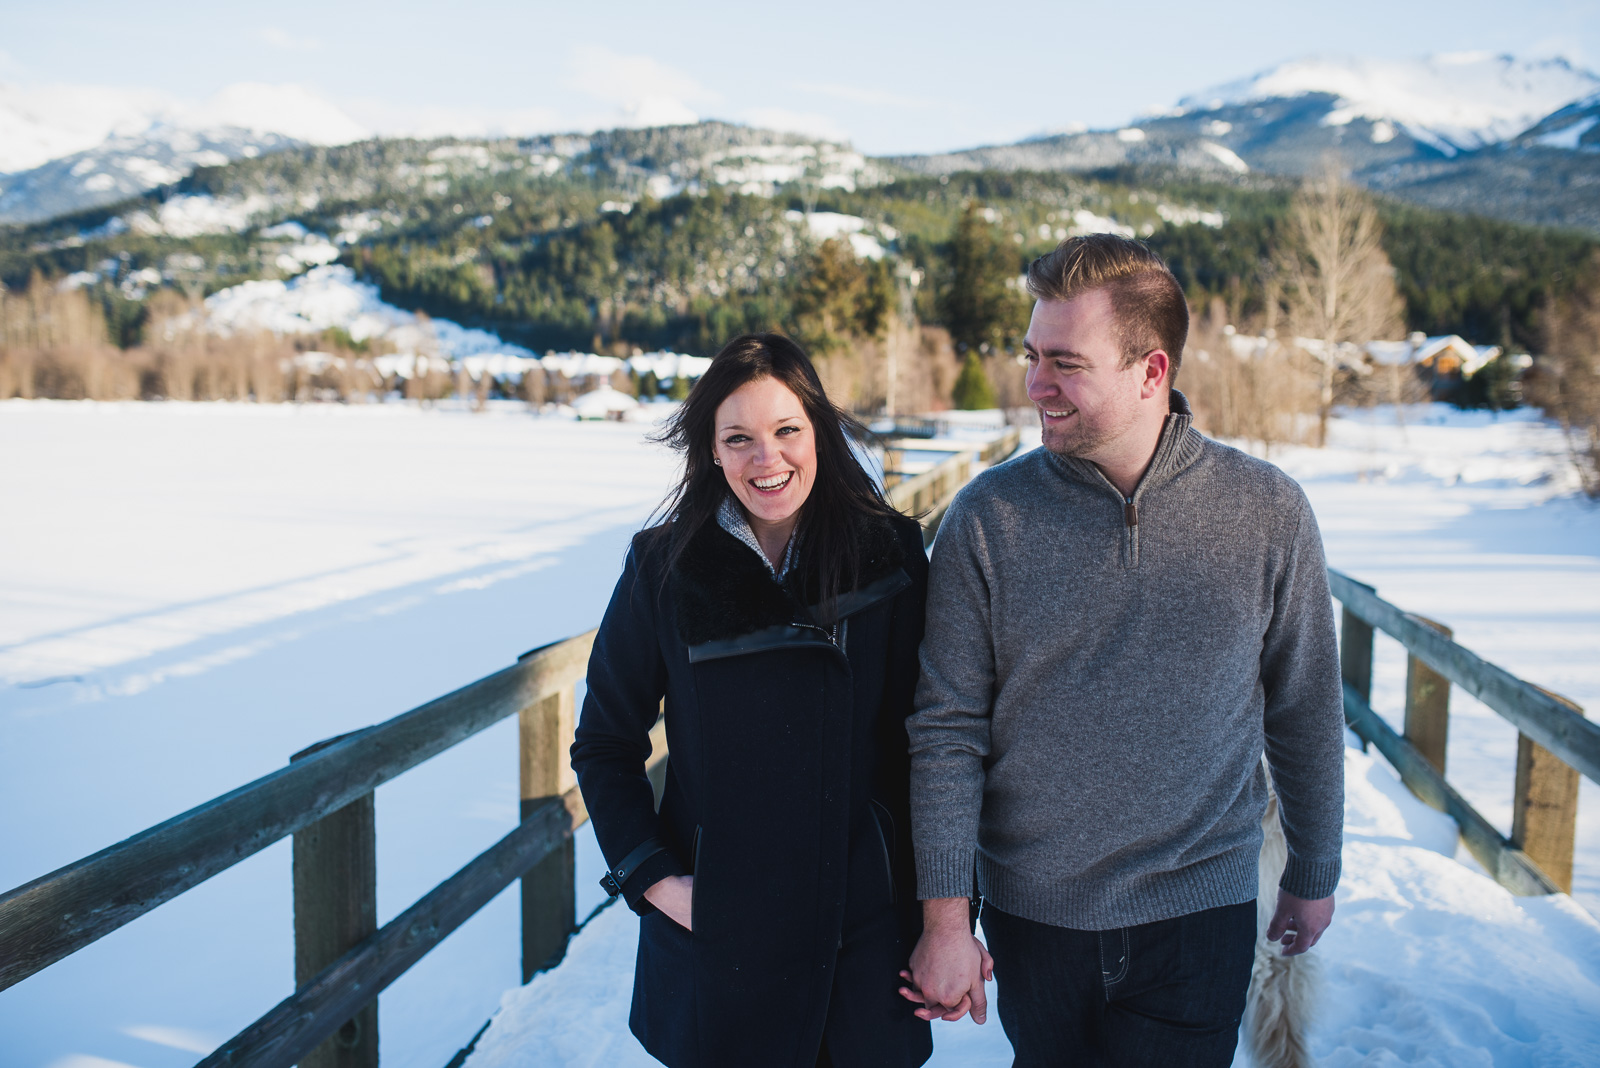 winter-whistler-engagement-whistler-wedding-photographer-green-lake-engagement-5.jpg